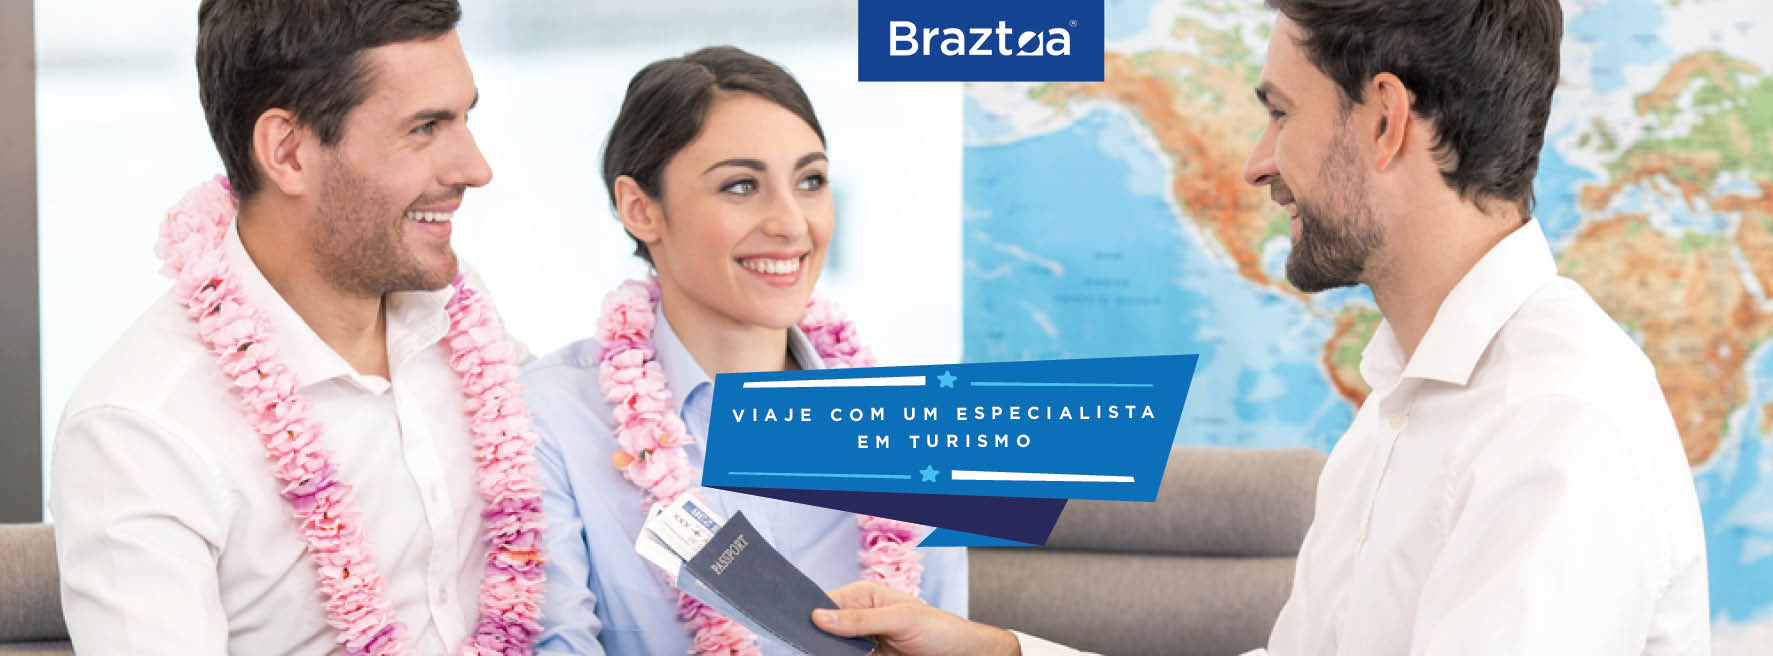 50º Encontro Comercial Braztoa - Turismo on Line